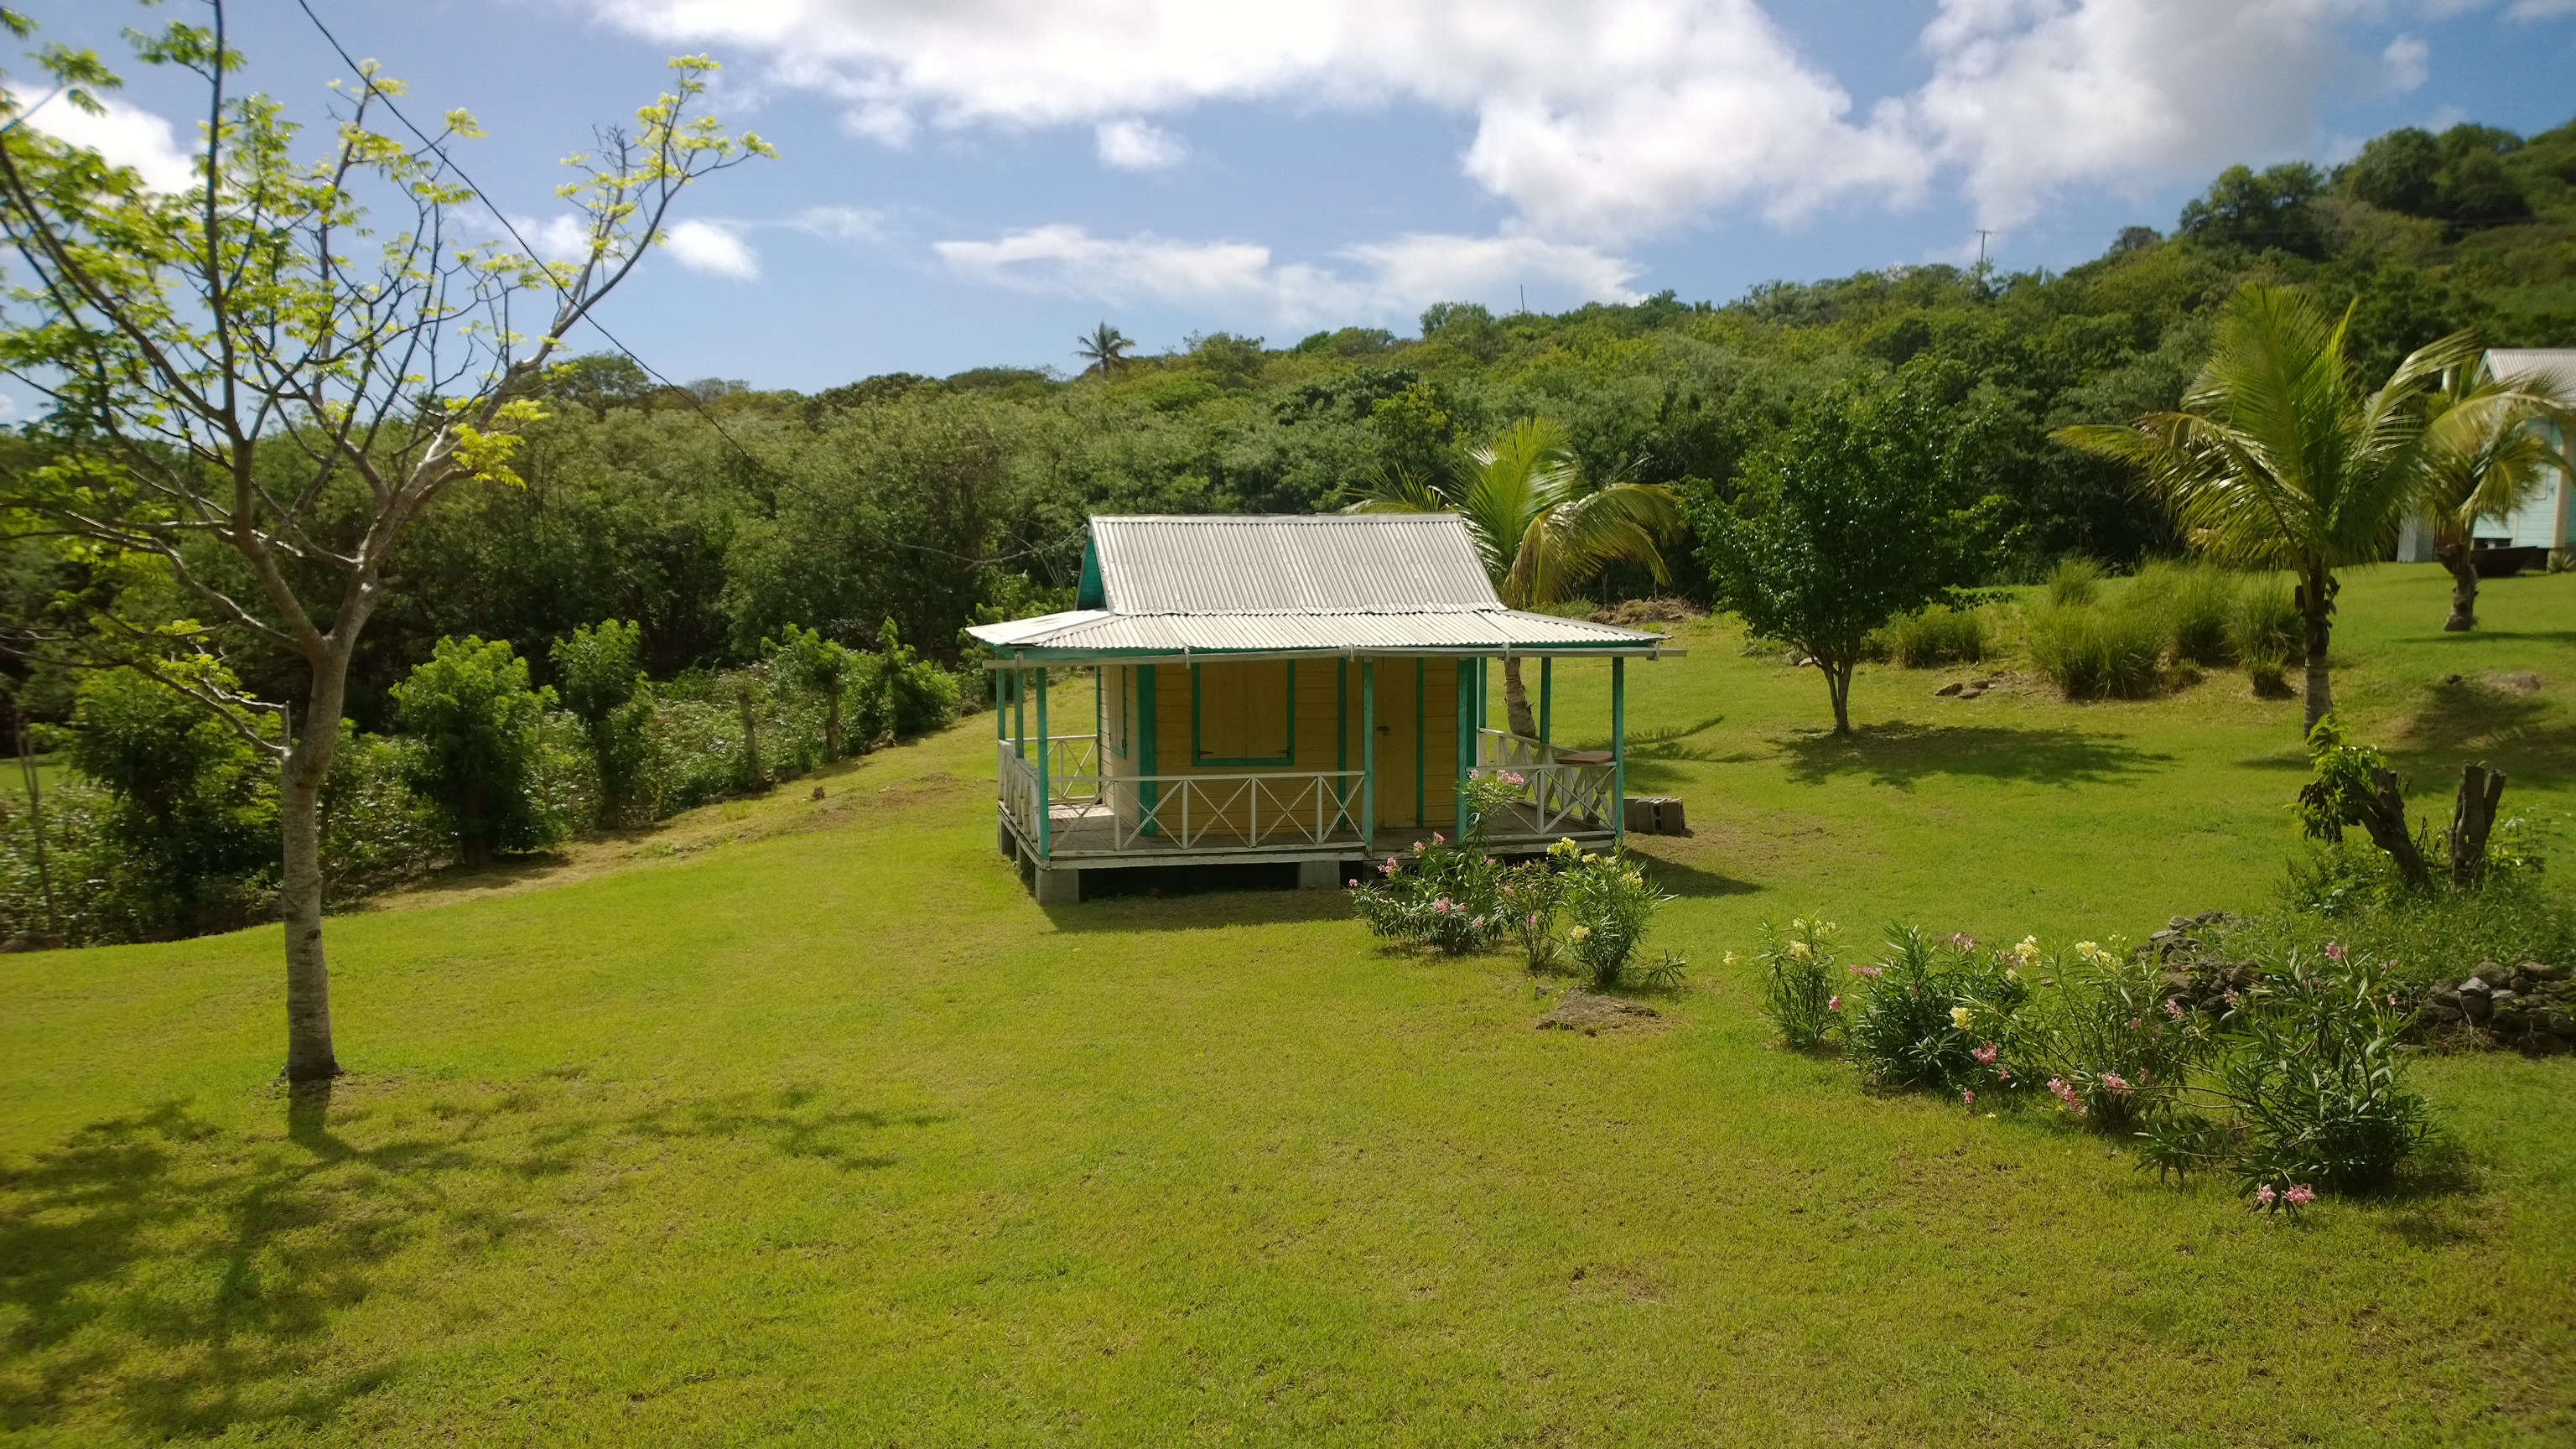 WP 20130307 21 52 57 Pro Why You Should Visit Nevis West Indies | Queen of the Caribees